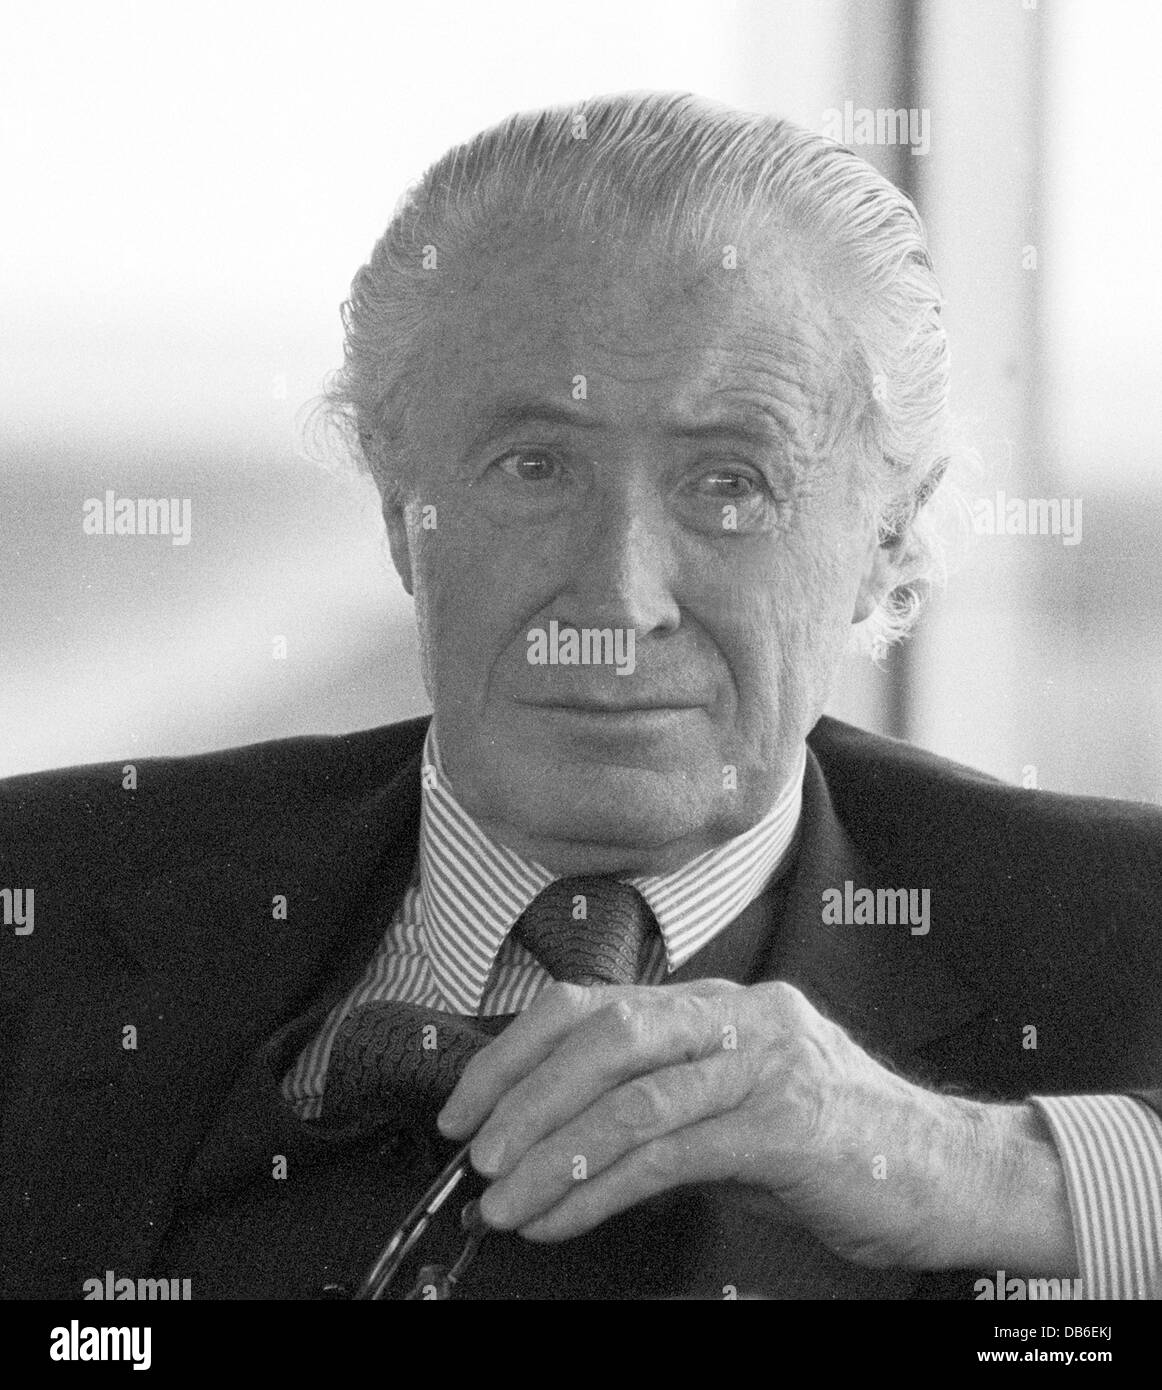 Duncan Edwin Sandys, Baron Duncan-Sandys, CH PC was a British politician and minister in Conservative governments - Stock Image